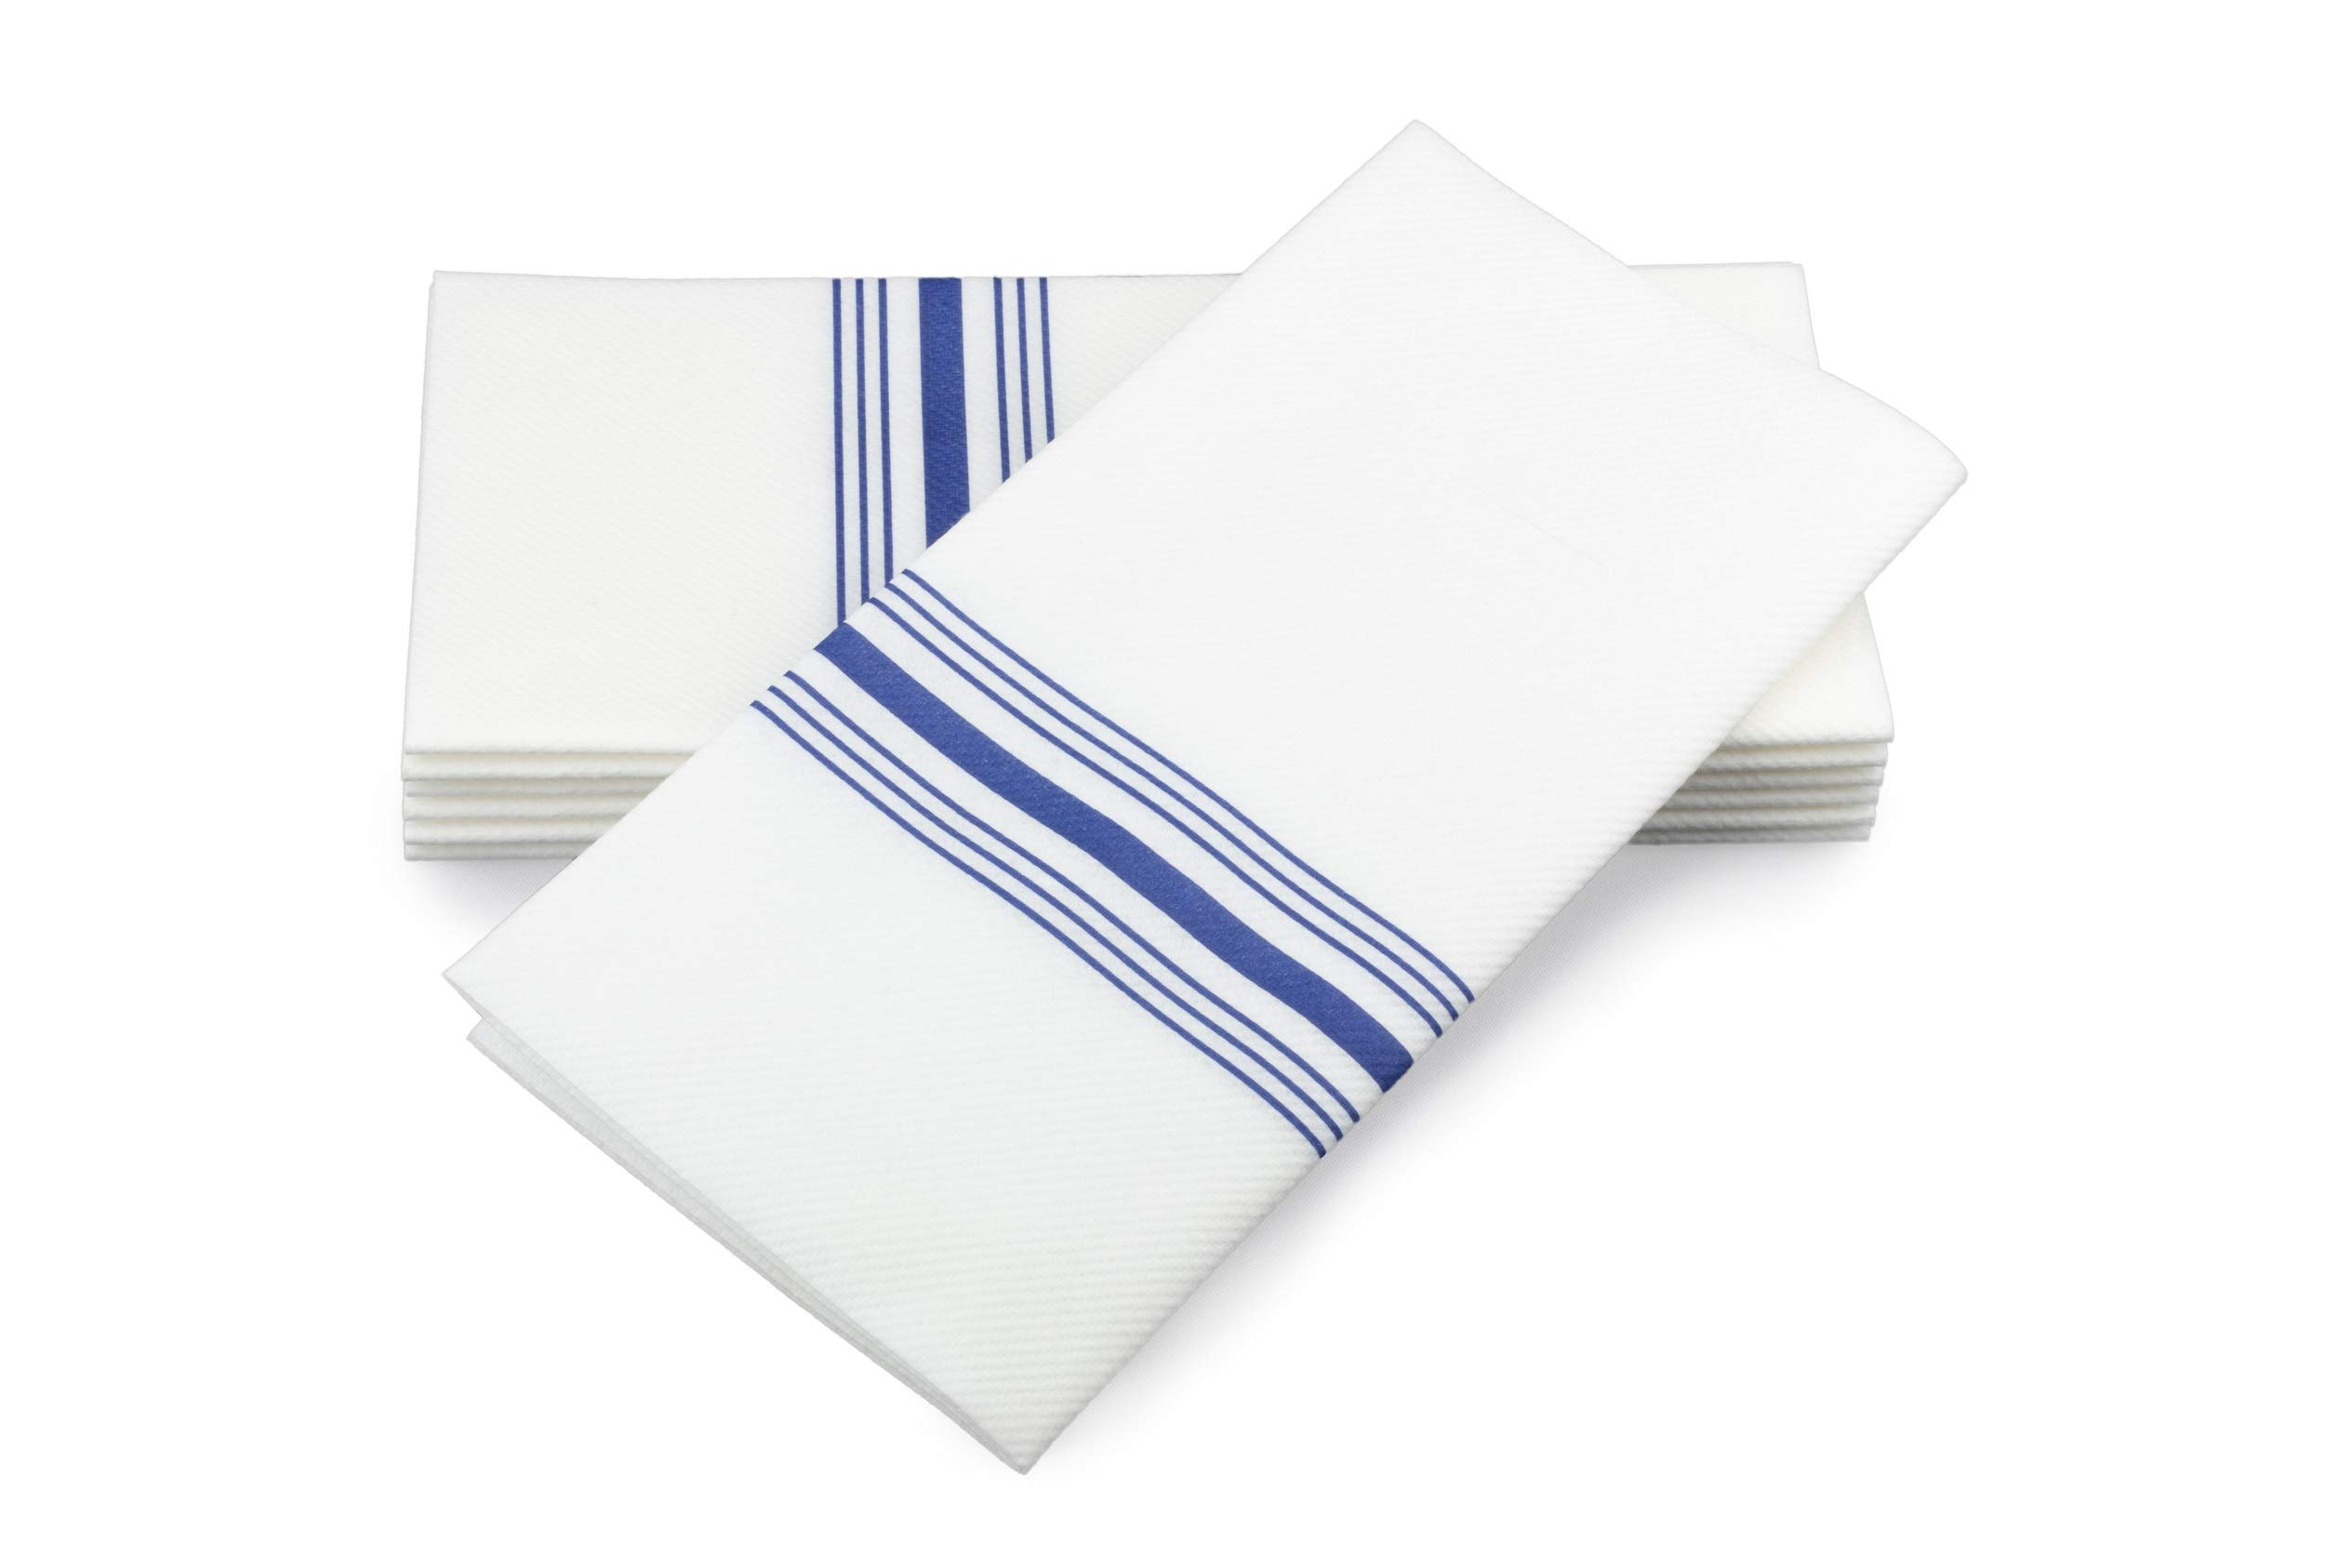 """Simulinen Dinner Napkins - Decorative Napkins - Cloth Like & Disposable Blue Bistro with Pocket - Elegant & Durable - Soft & Absorbent - Large 17""""x17"""" - Packaged for Easy Storage - Box of 75"""